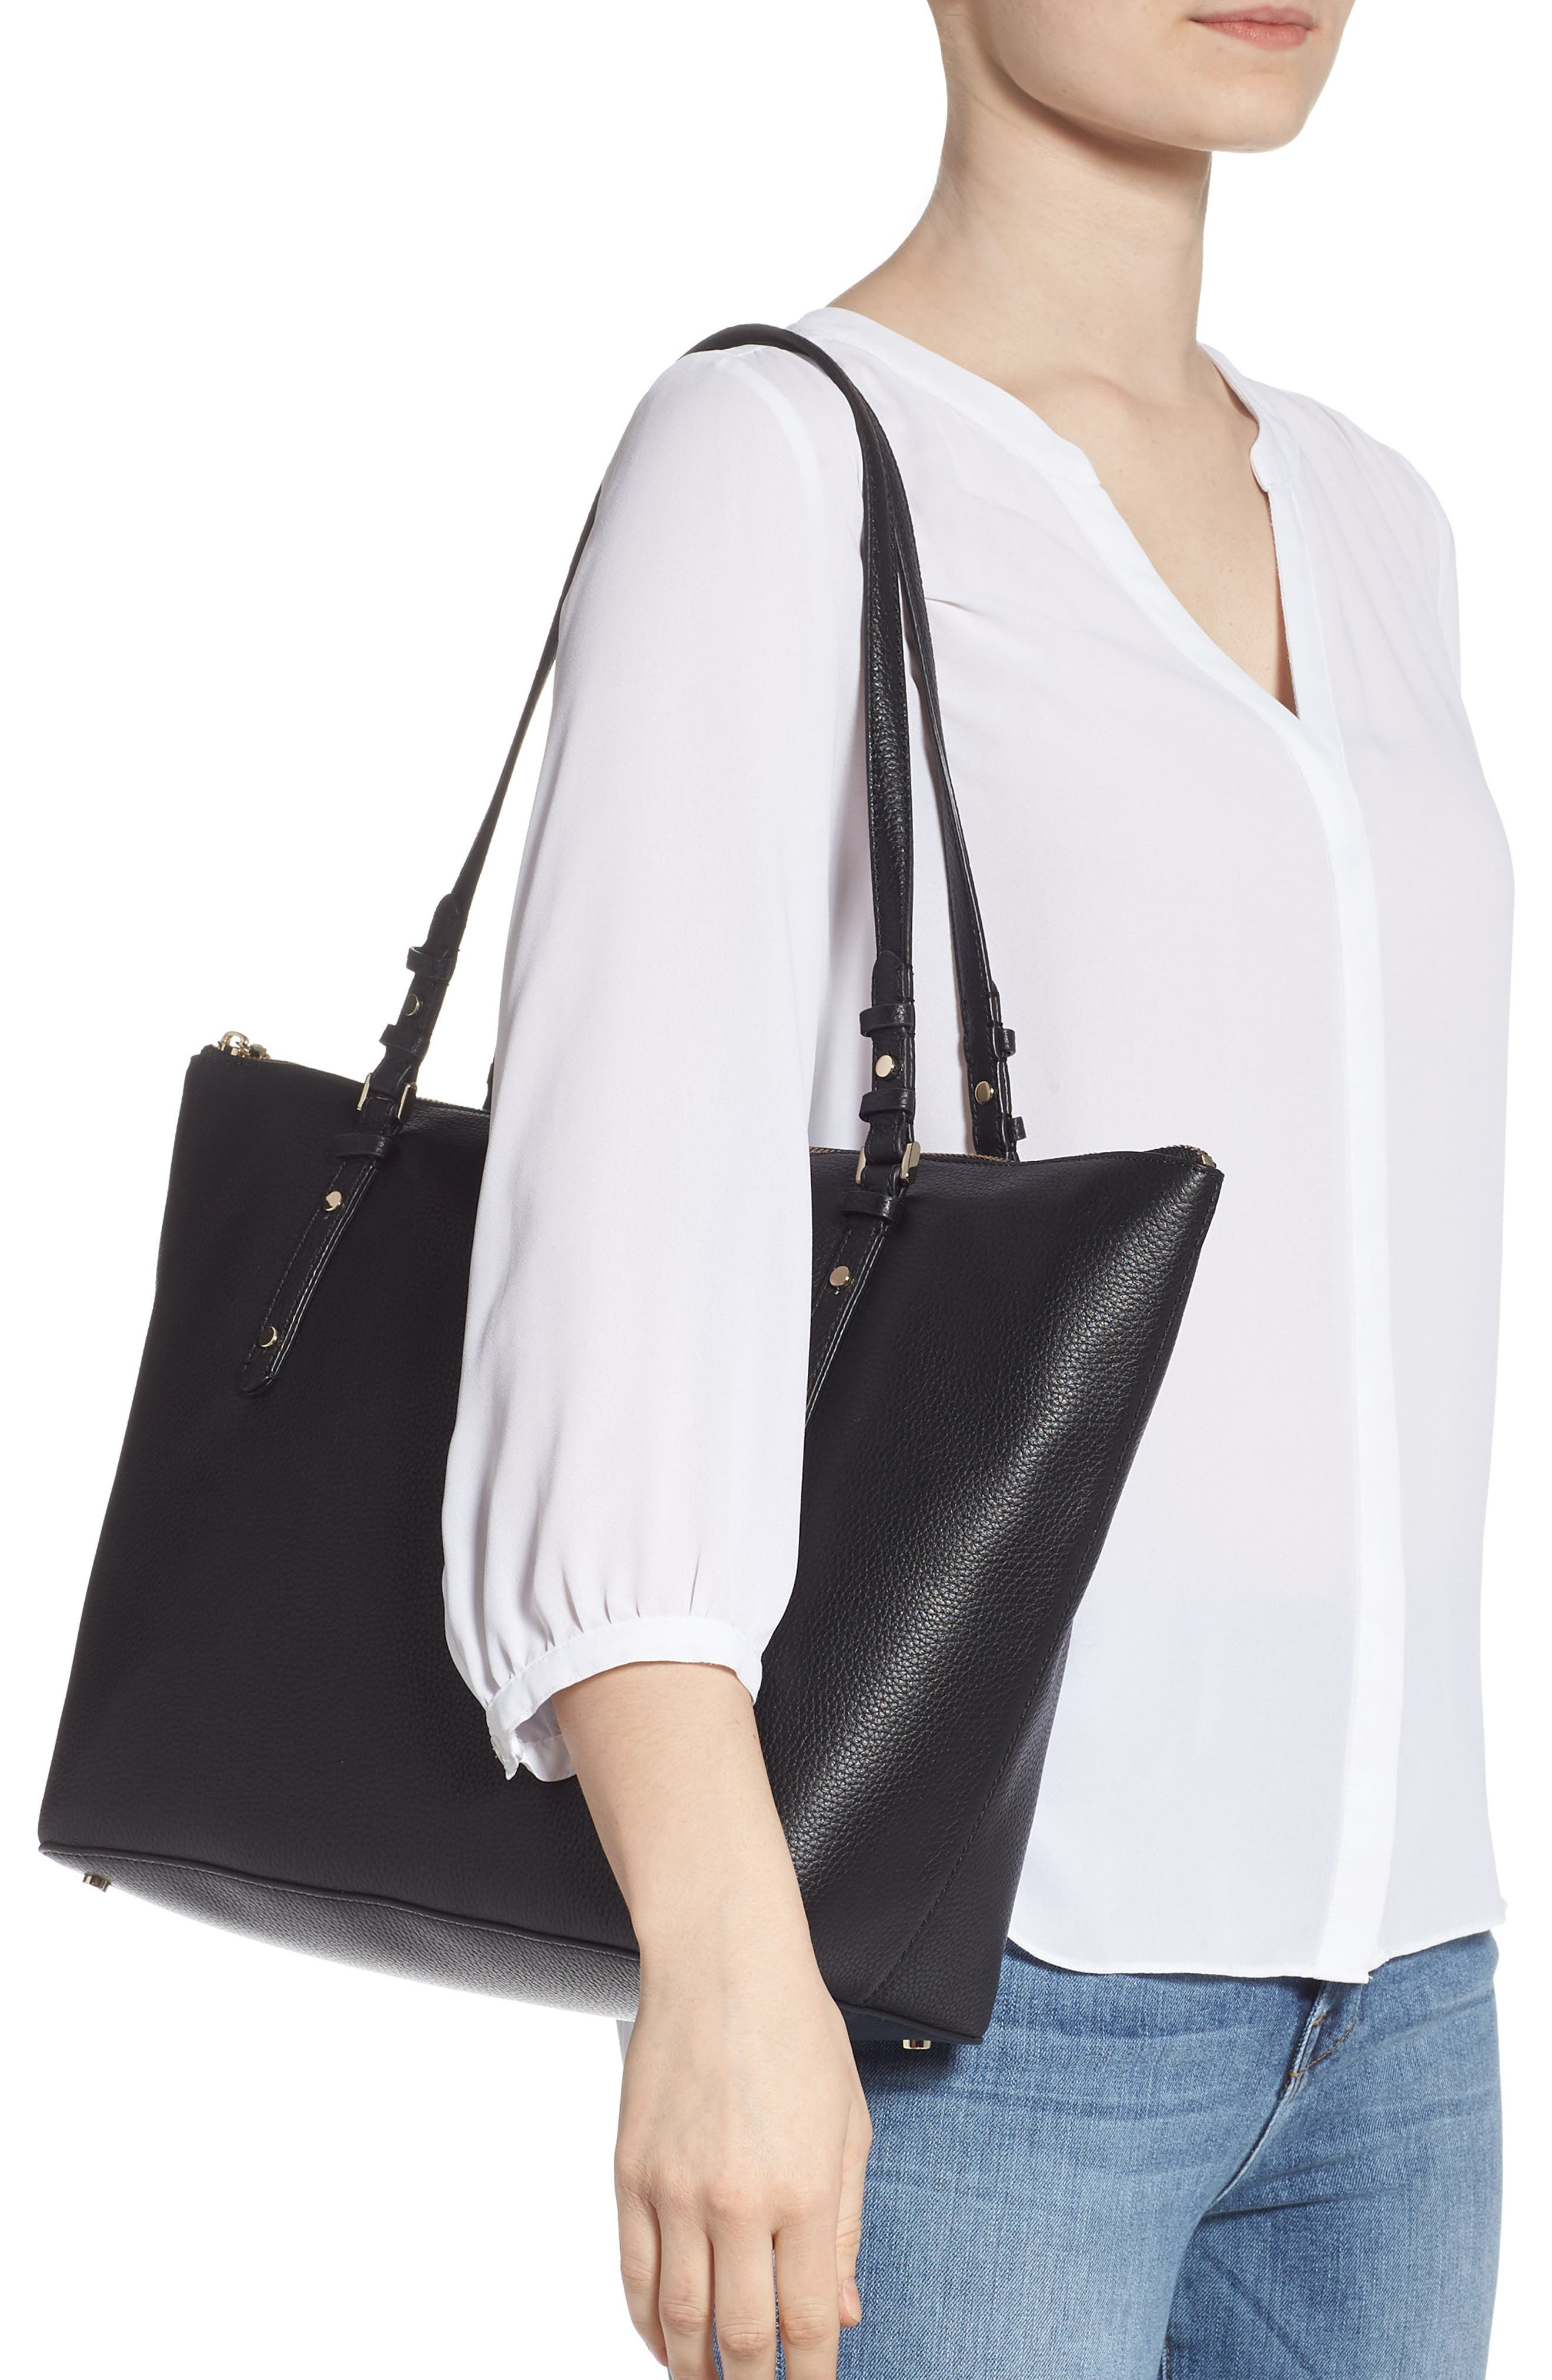 KATE SPADE NEW YORK,                             large polly leather tote,                             Alternate thumbnail 2, color,                             BLACK